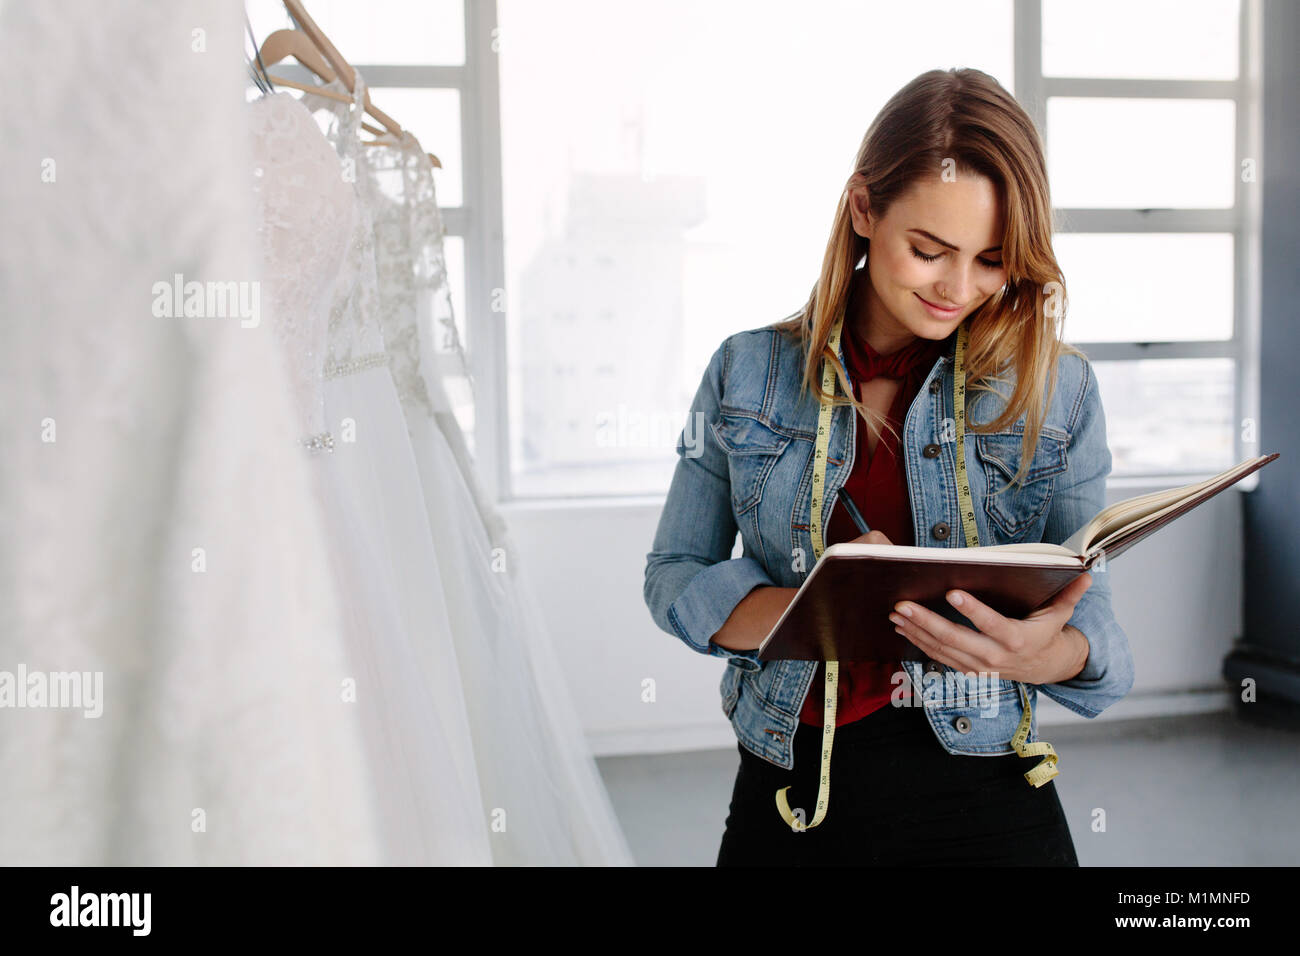 Female fashion designer working in bridal wear store and writing in a diary. Female bridal store owner in her boutique. - Stock Image